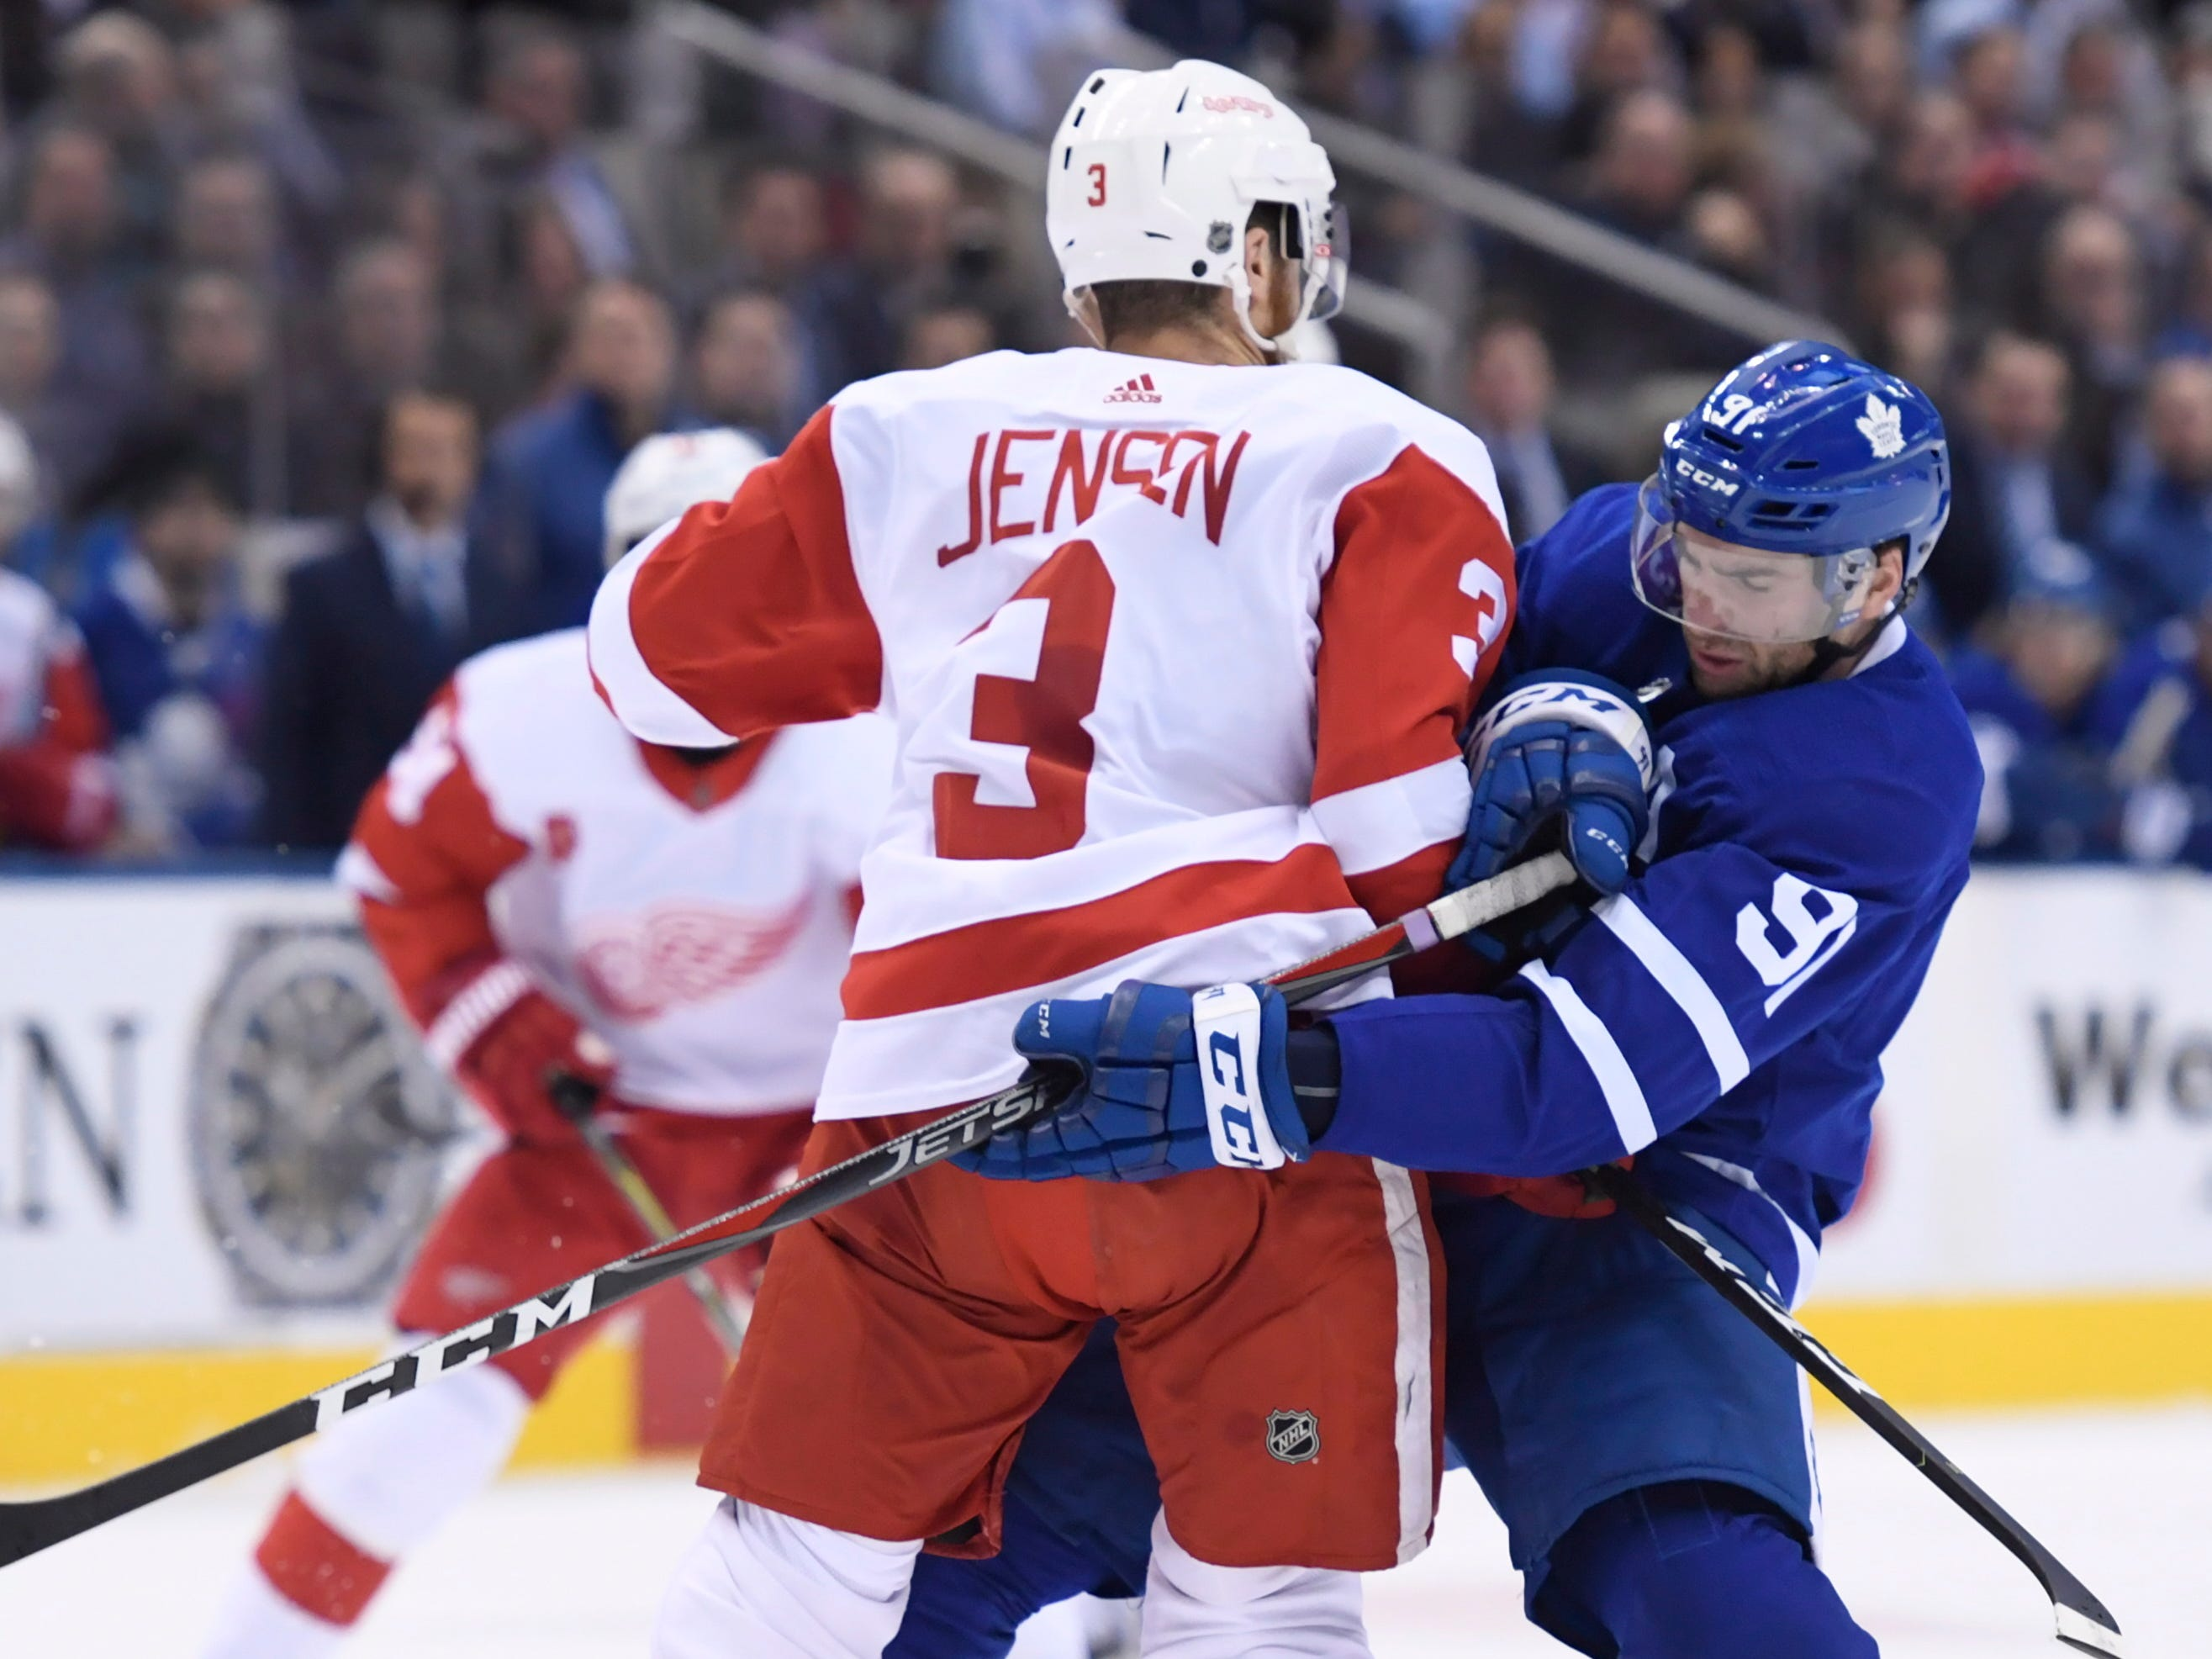 Maple Leafs center John Tavares (91) gets tied up with Red Wings defenseman Nick Jensen during the first period.